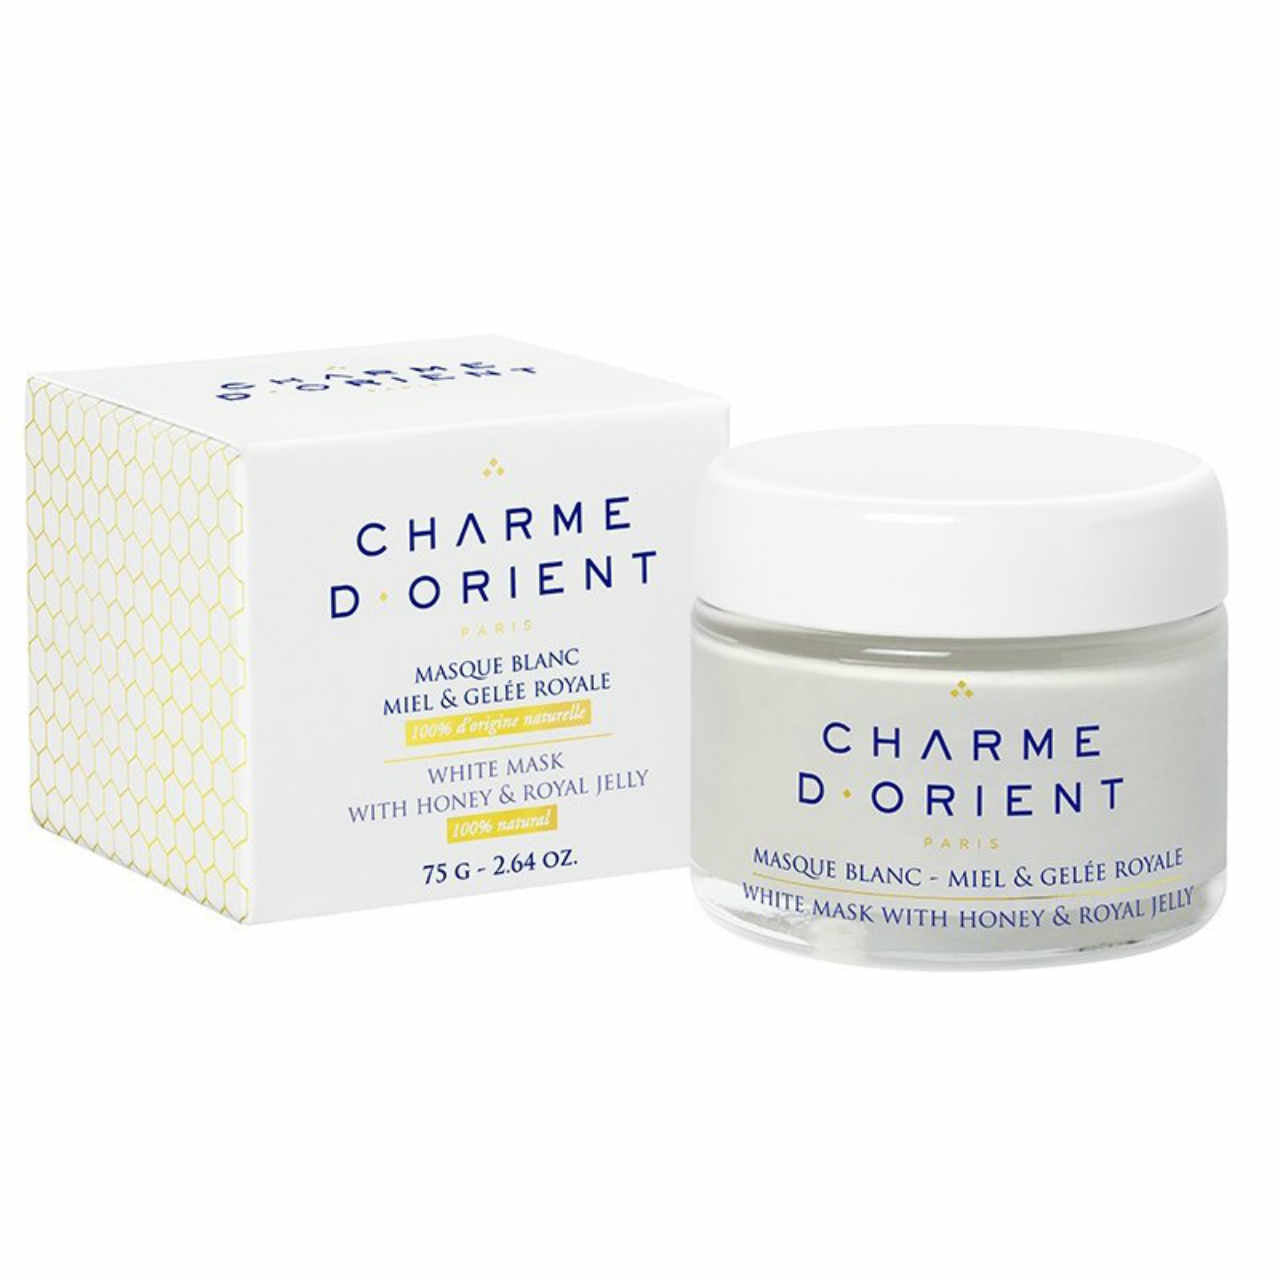 CHARME D'Orient White Mask with Honey and Royal Jelly